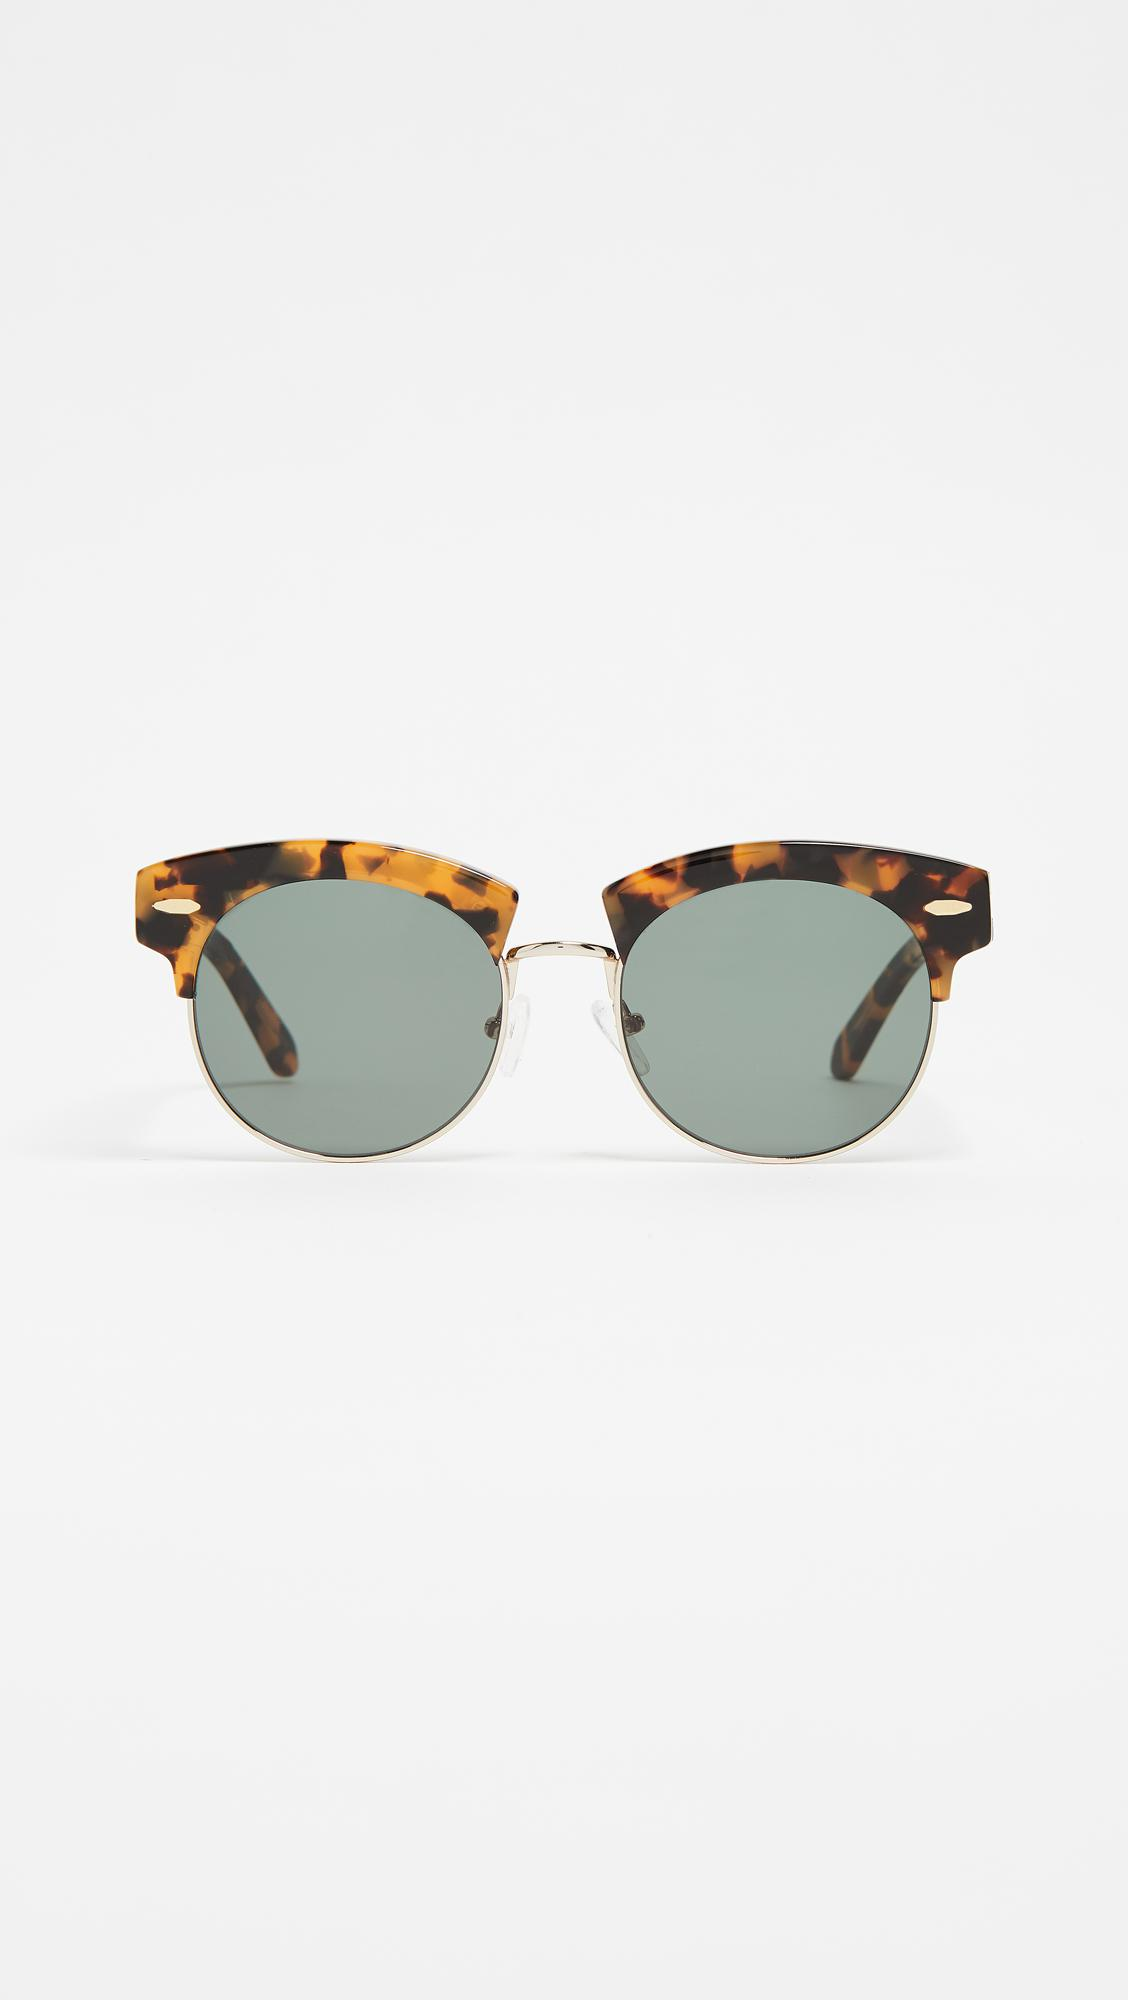 The Constable Round Acetate Sunglasses Karen Walker